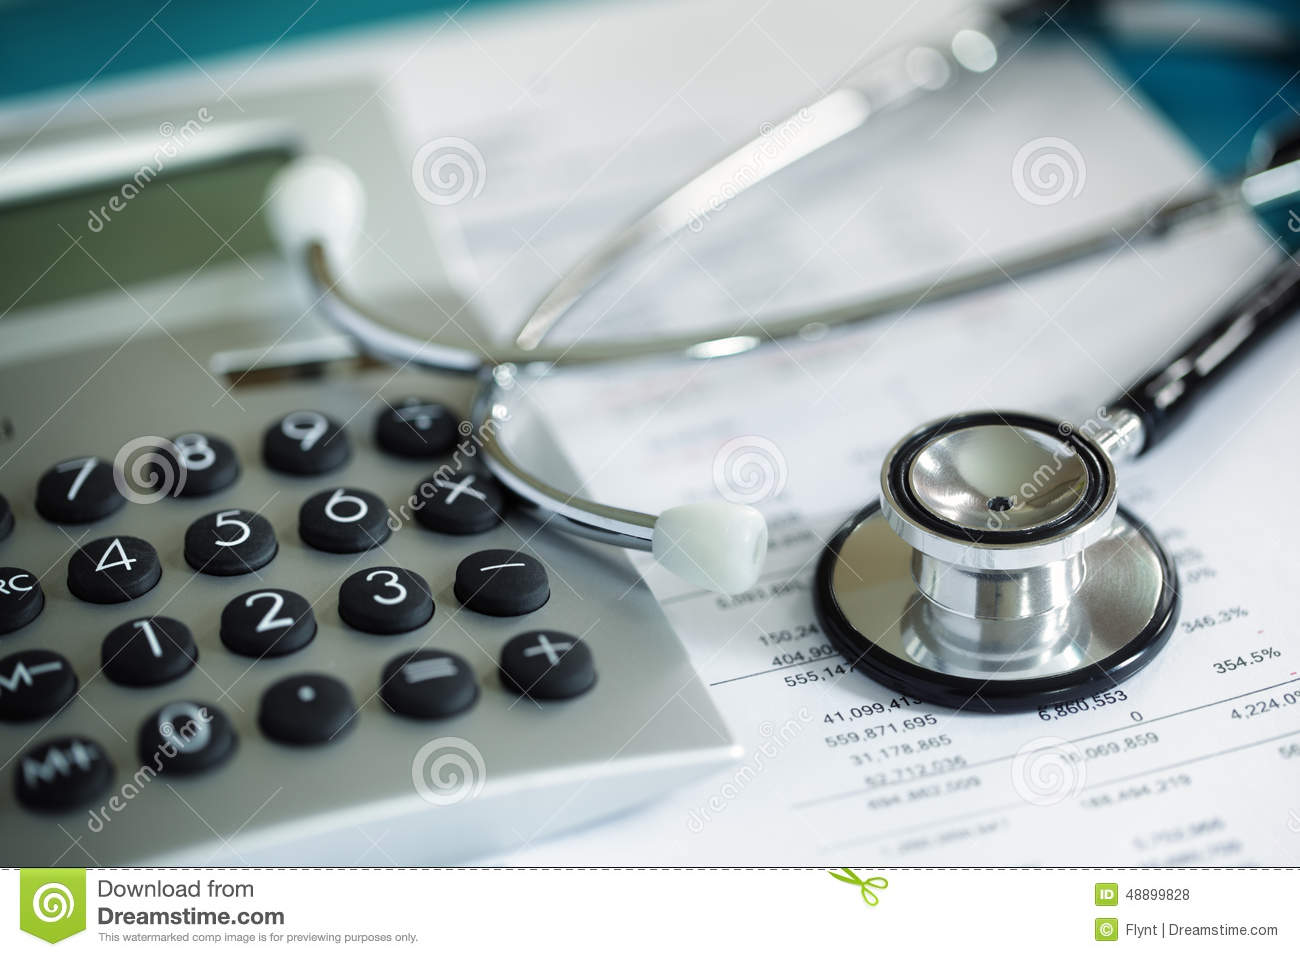 finances in healthcare Find out about jobs, duties and career opportunities in healthcare financial planning, one of the promising careers with an mba in healthcare management.